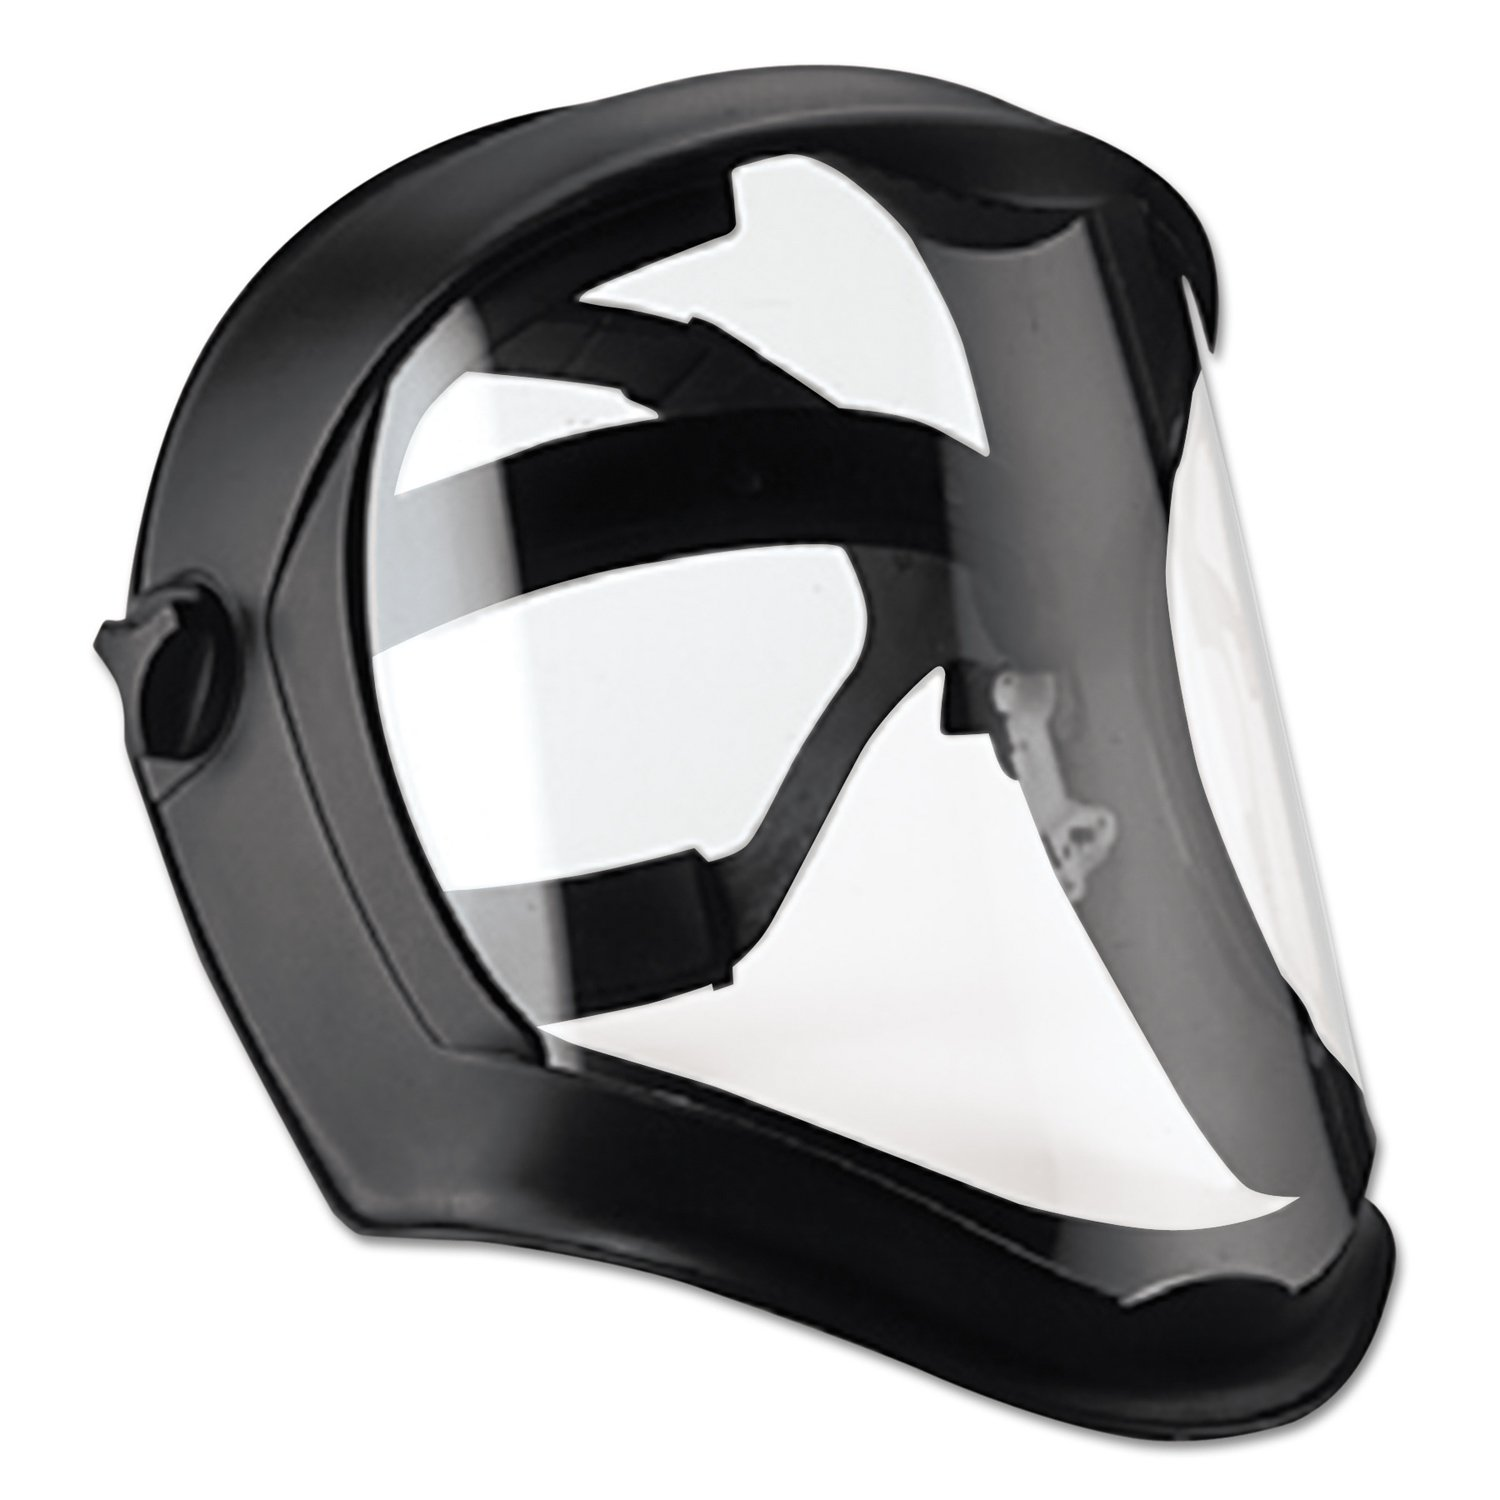 S8510 Uvex Bionic Face Shield with Clear Polycarbonate Visor and Anti-Fog//Hard Coat